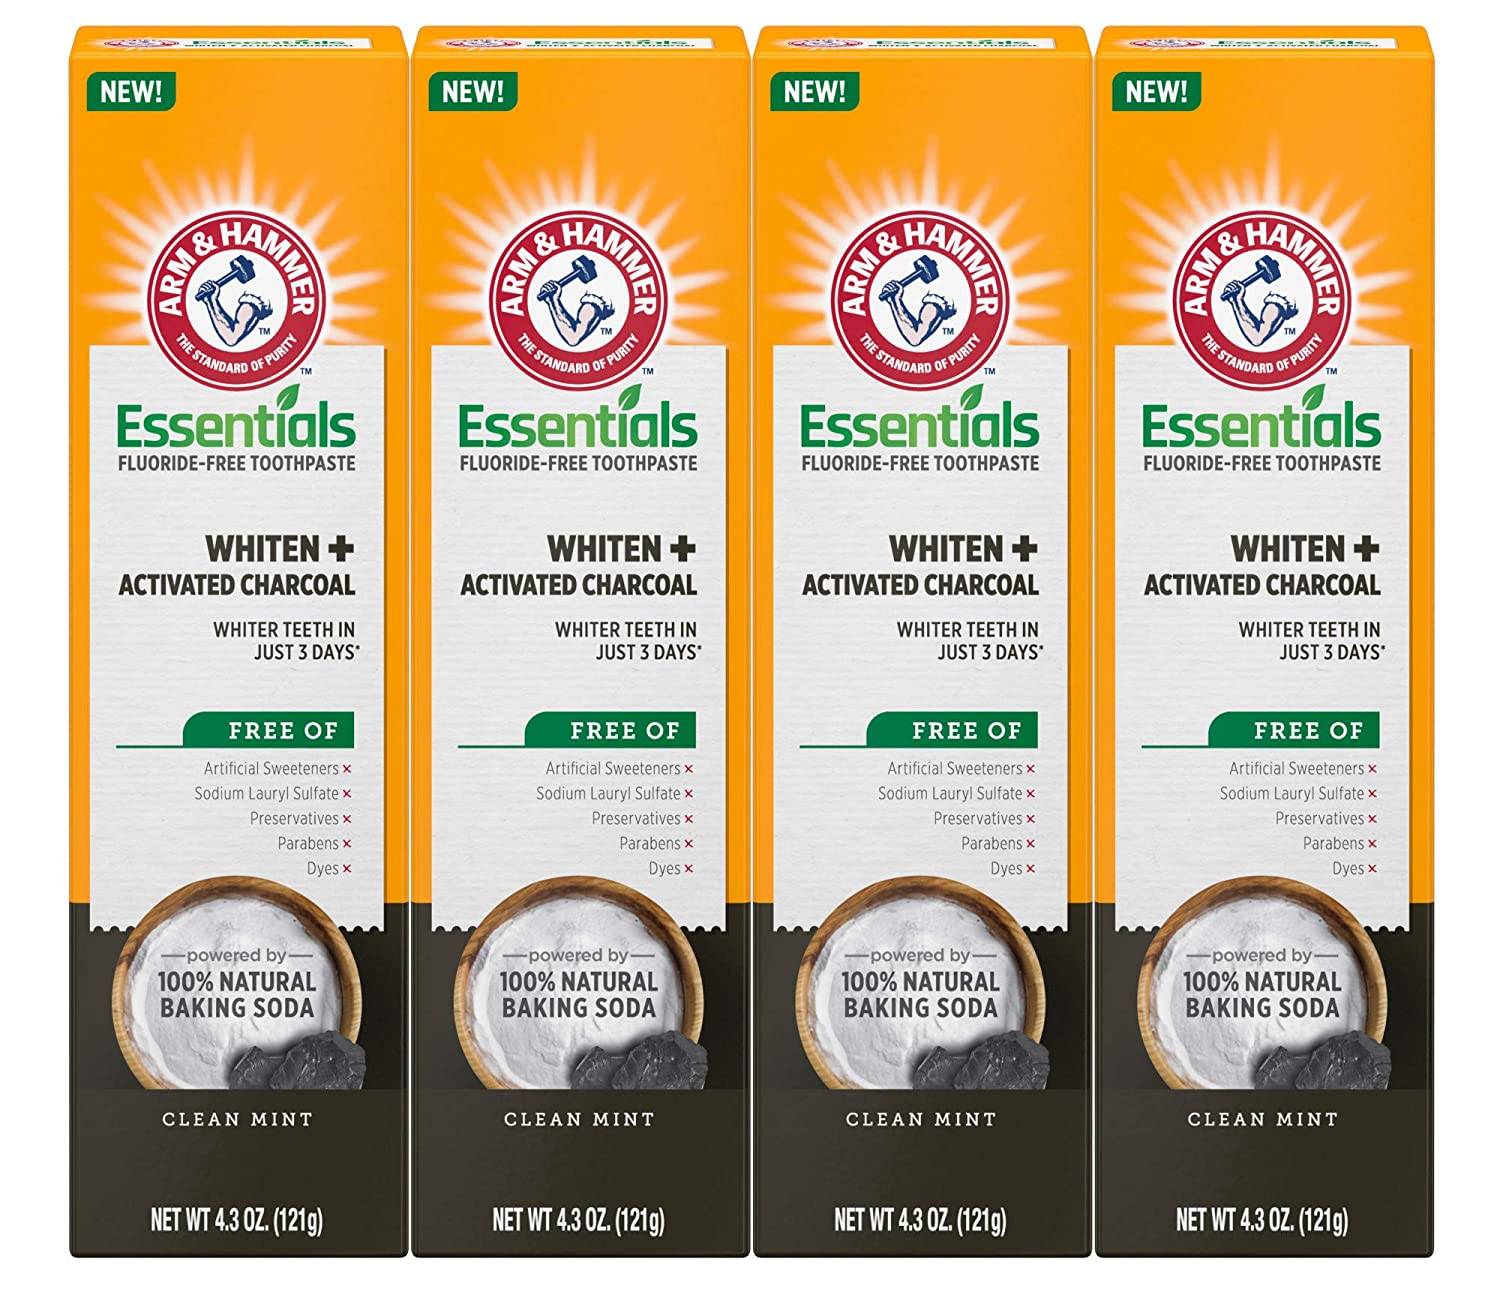 Arm & Hammer Essentials Whiten & Activated Charcoal Fluoride Free Toothpaste, 4.3 OZ, 4 Pack